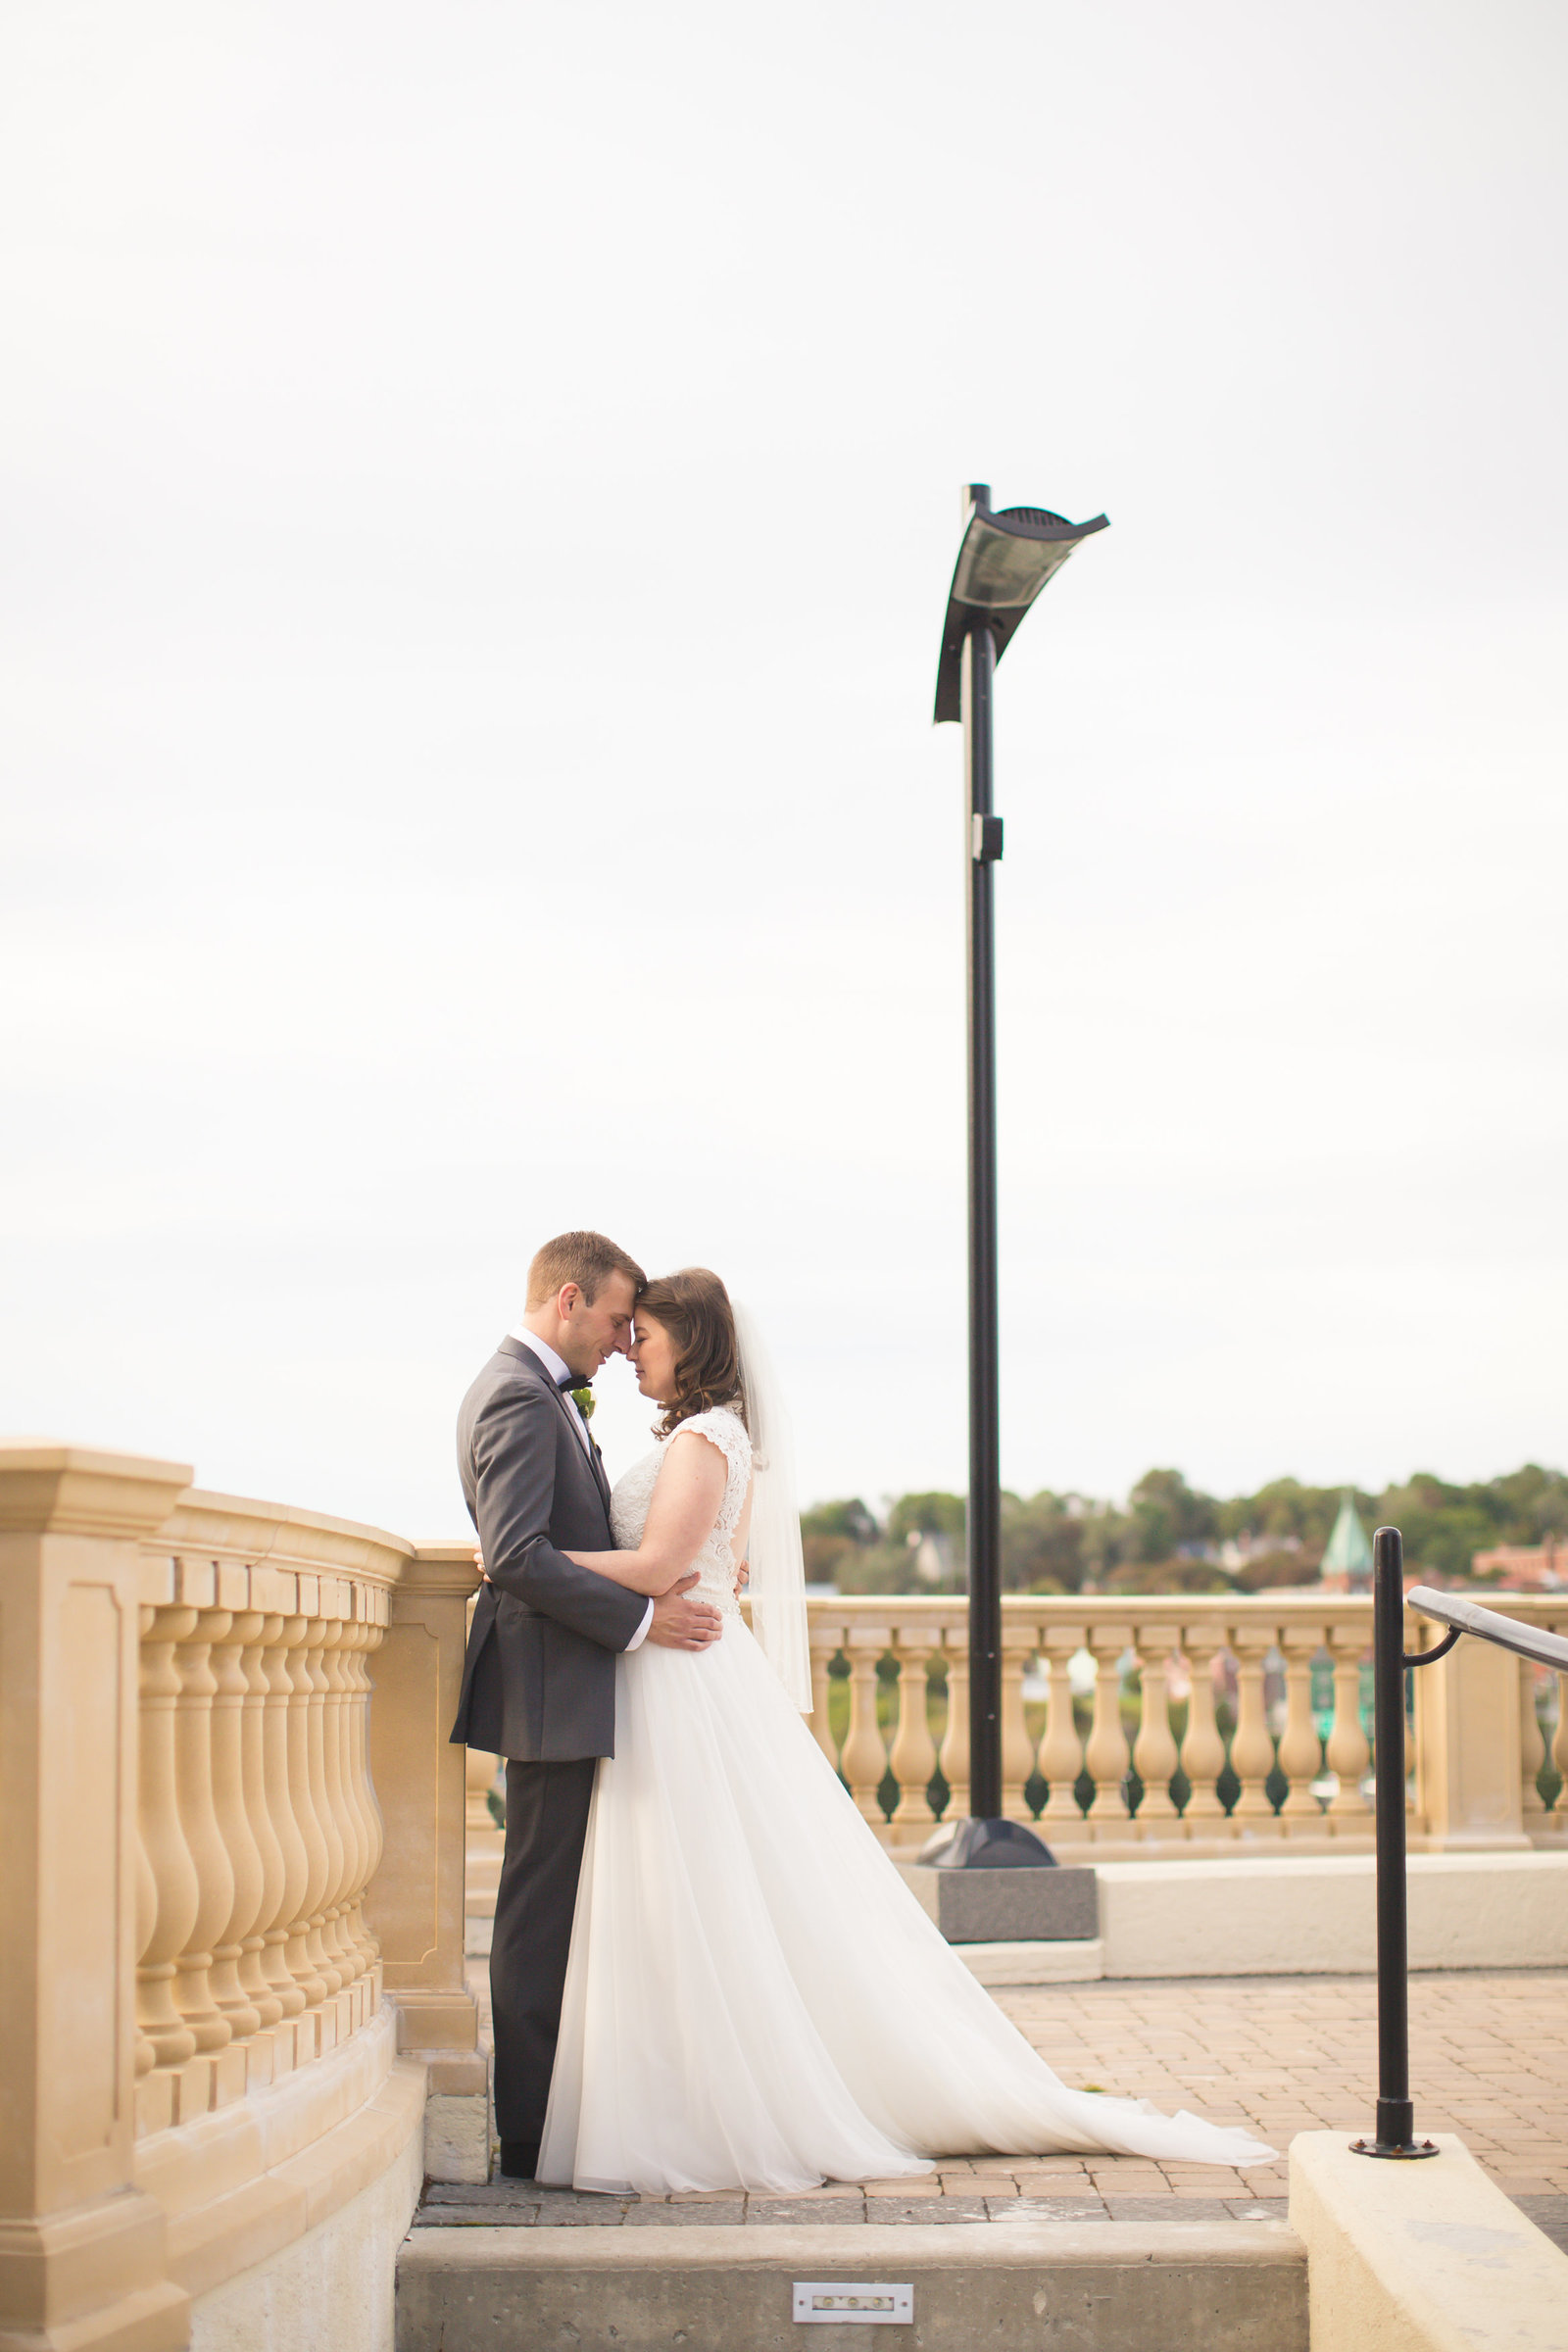 Saint John NB Wedding Photographers & Filmmakers - Uptown Saint John Wedding46